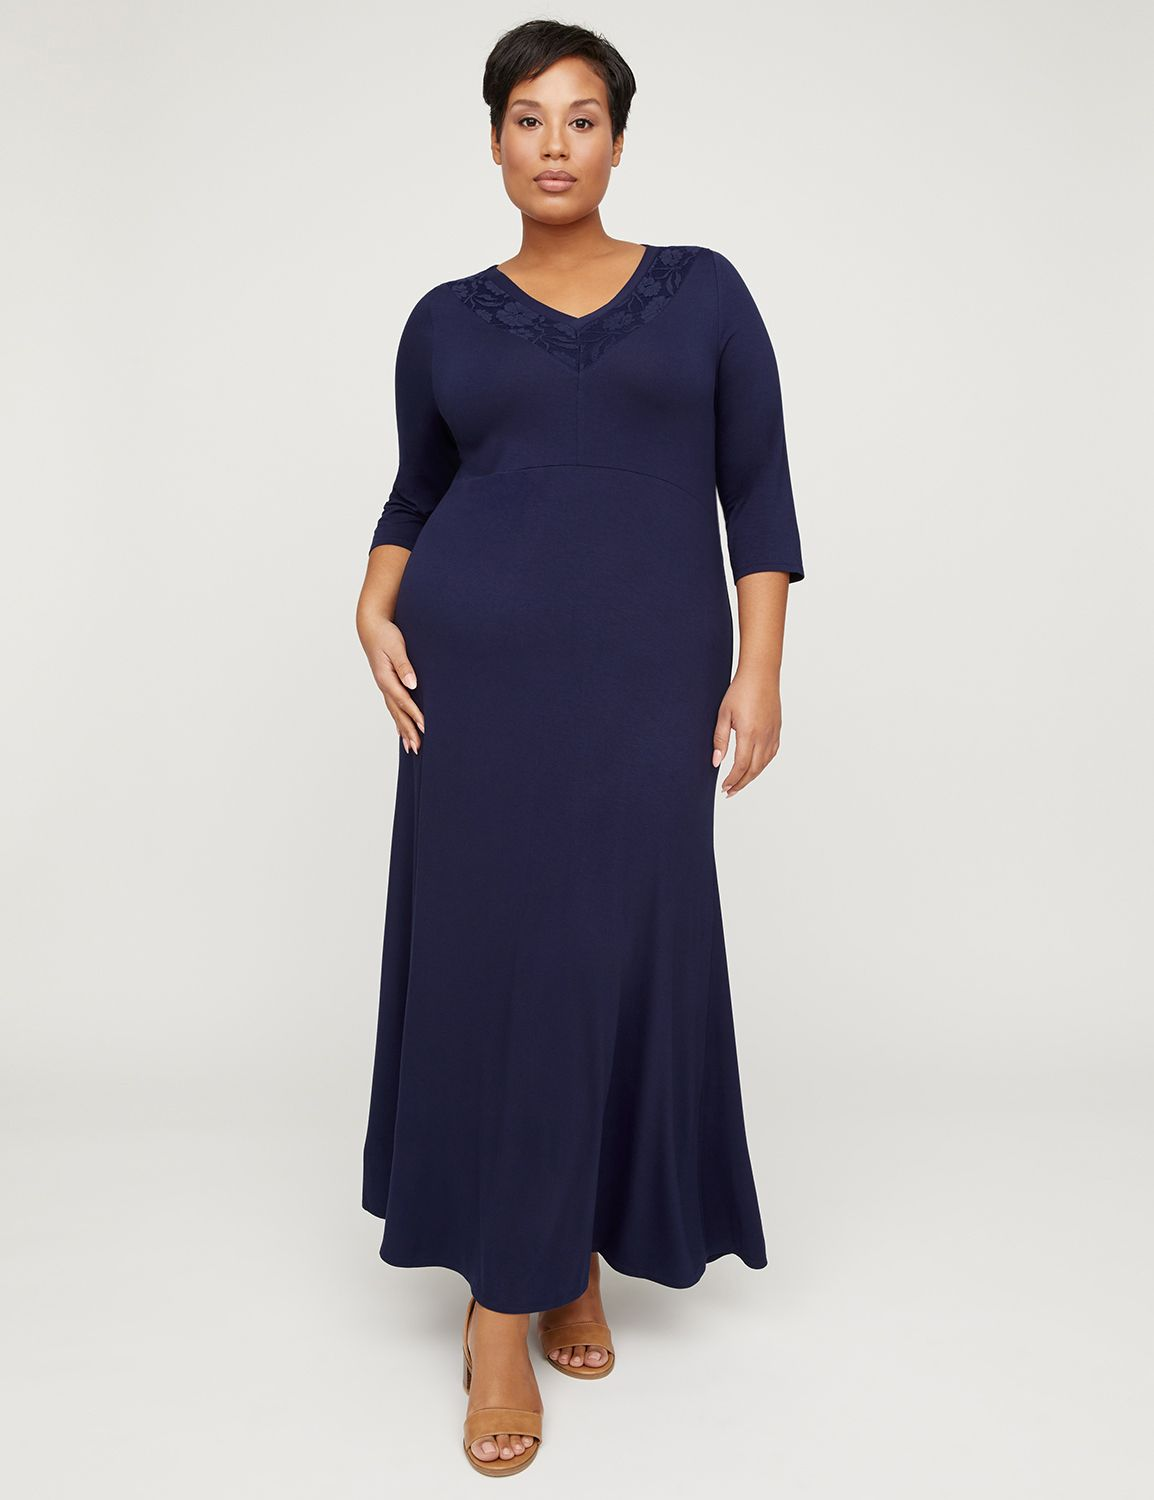 AnyWear Navy Maxi Dress with Lace